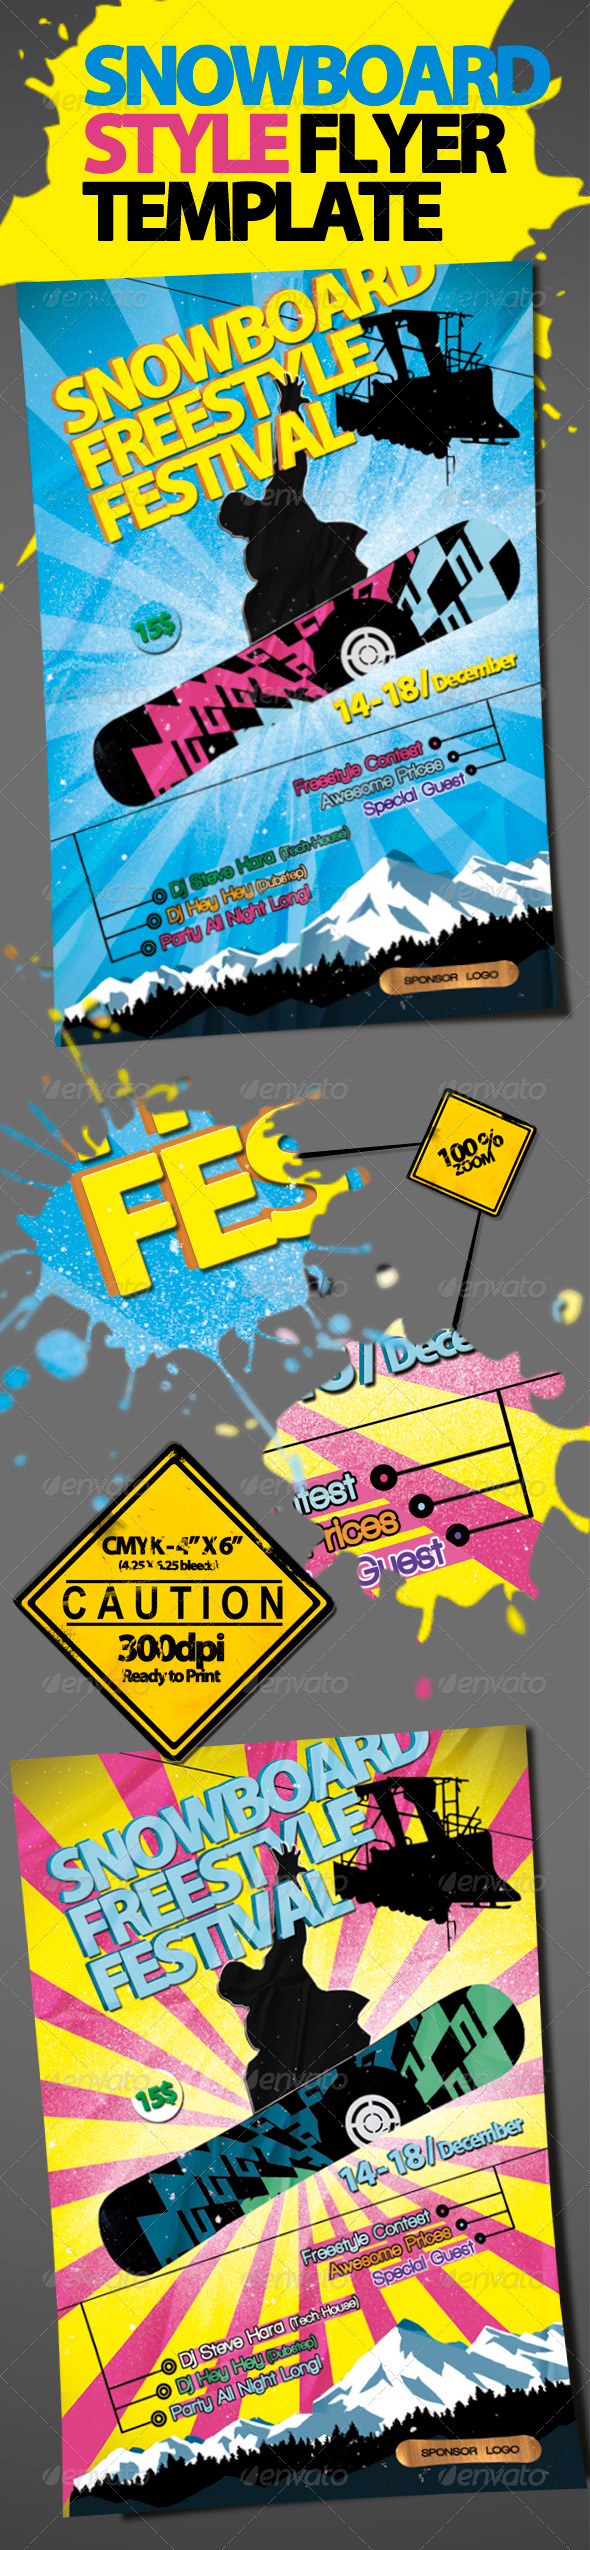 GraphicRiver Snowboard Style Flyer Template 887856